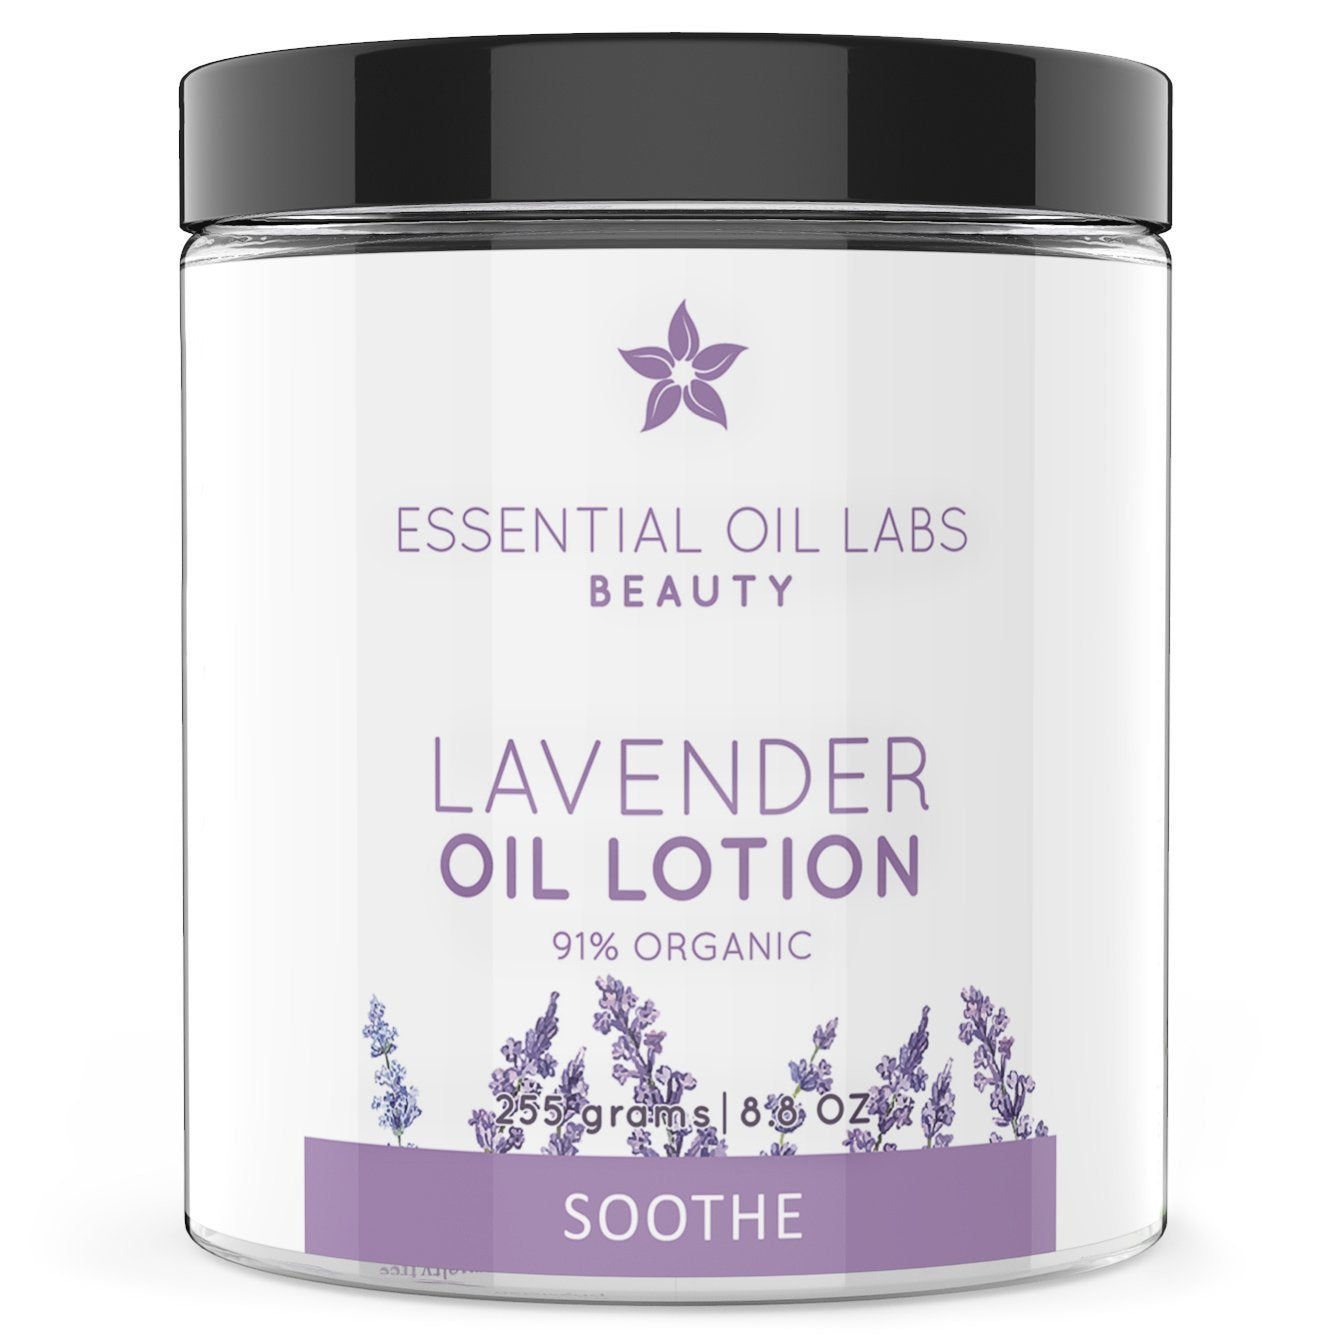 Lavender Oil Lotion, 8.8 oz.